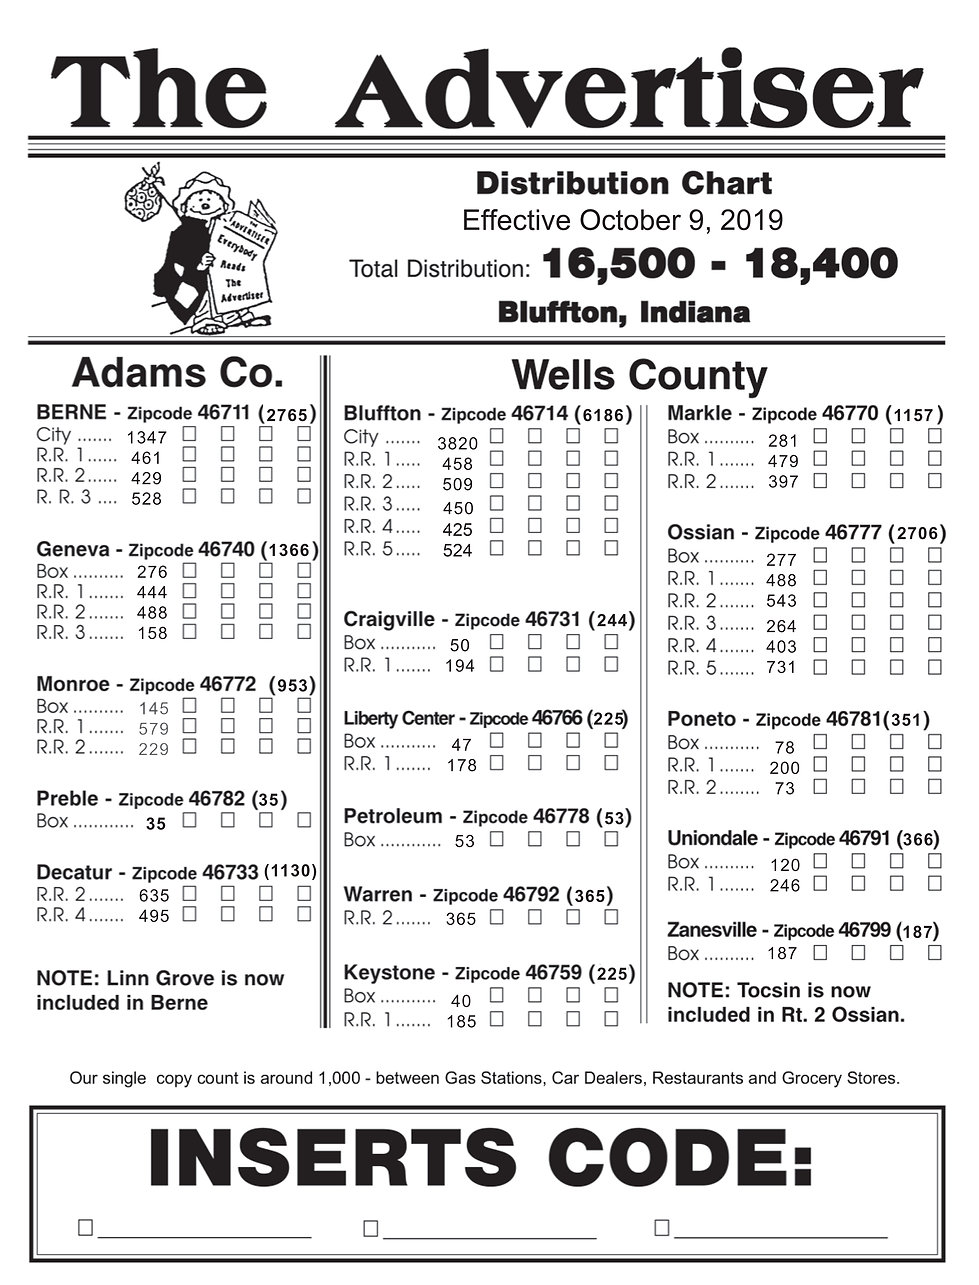 Distribution Sheet October 2019.jpg